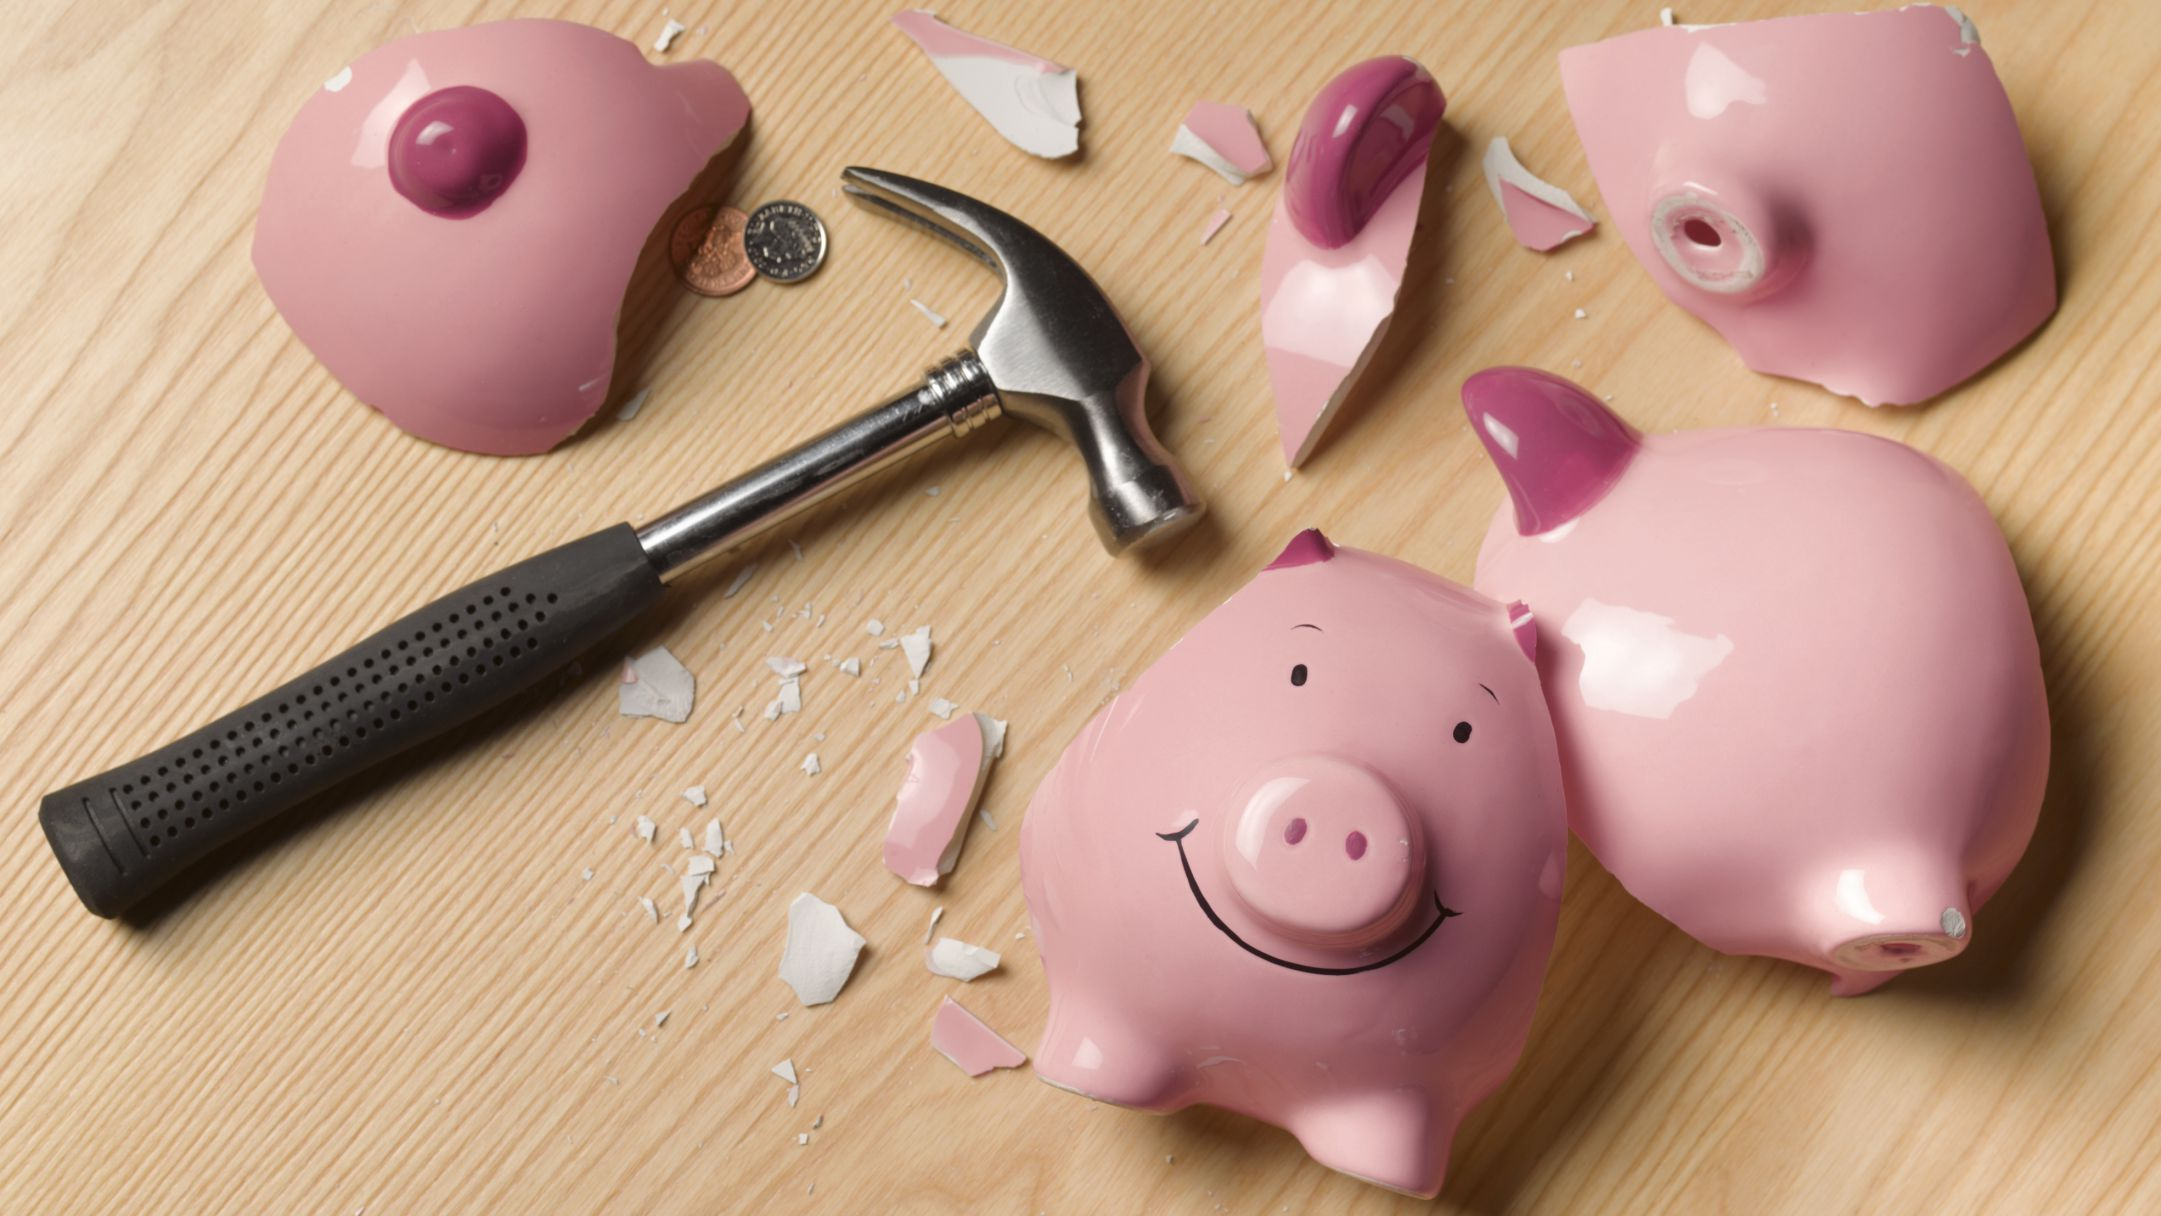 Filing bankruptcy business